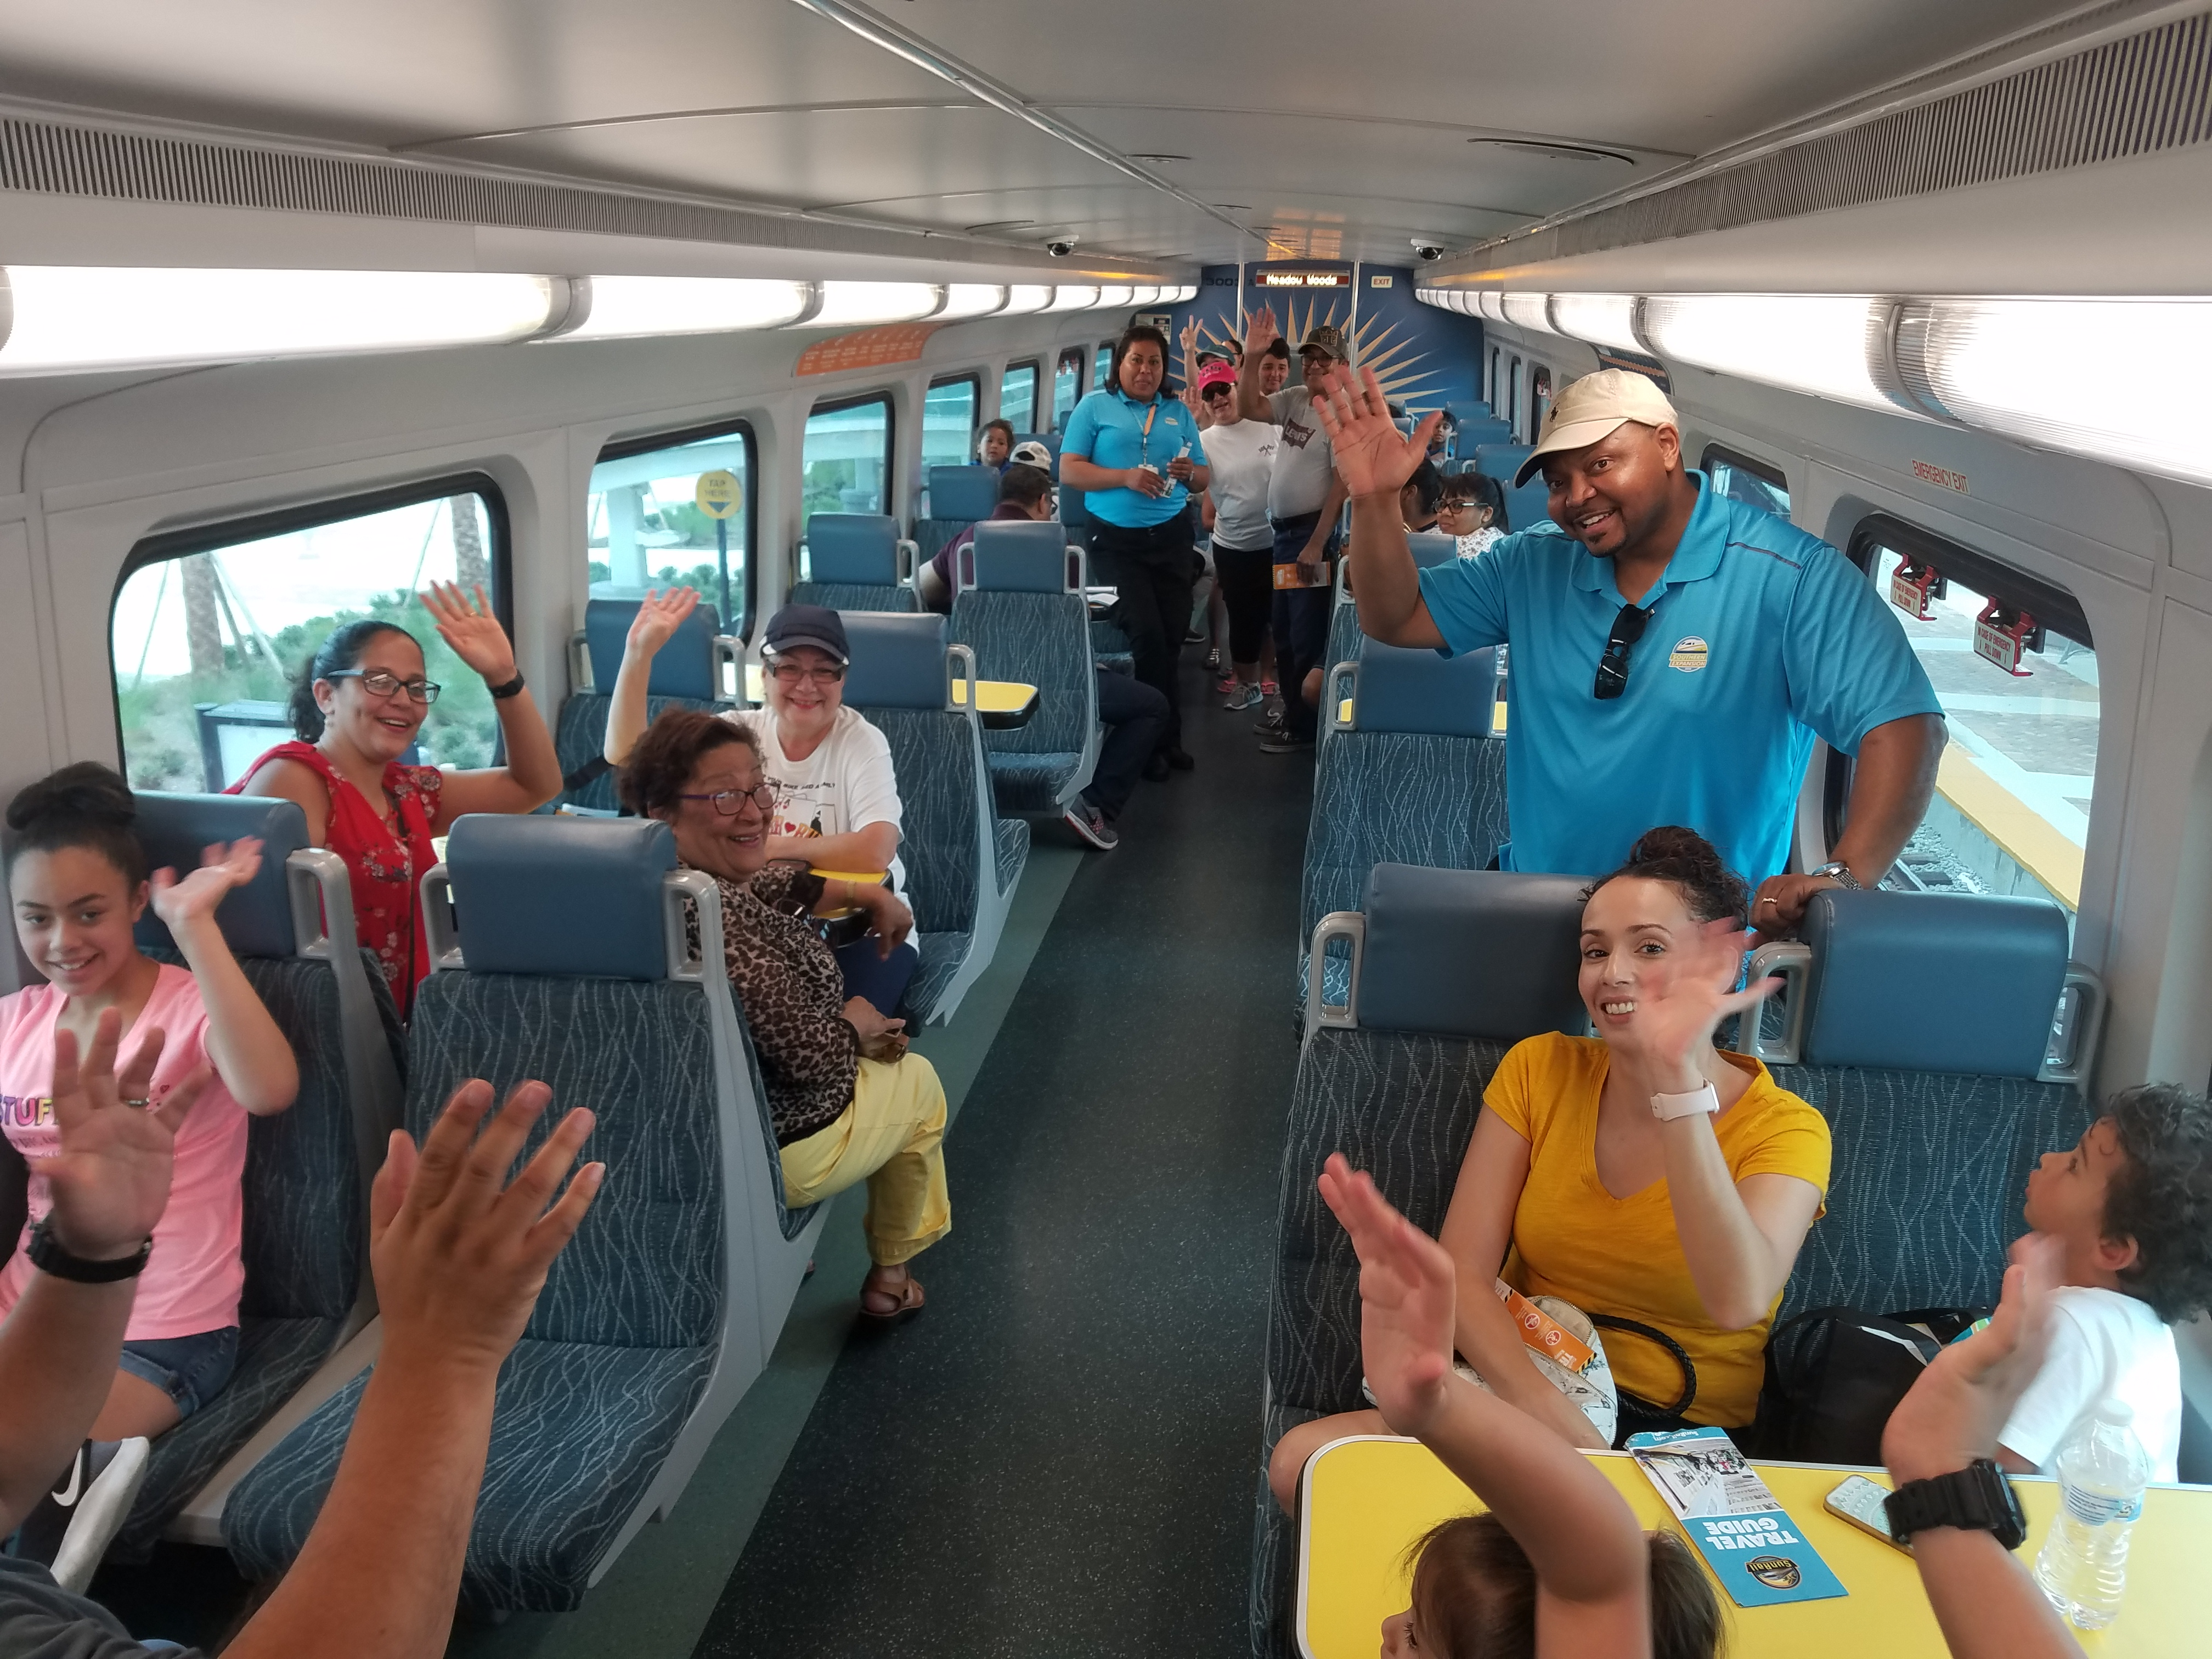 People inside a Sunrail train waving at the camera from their seats